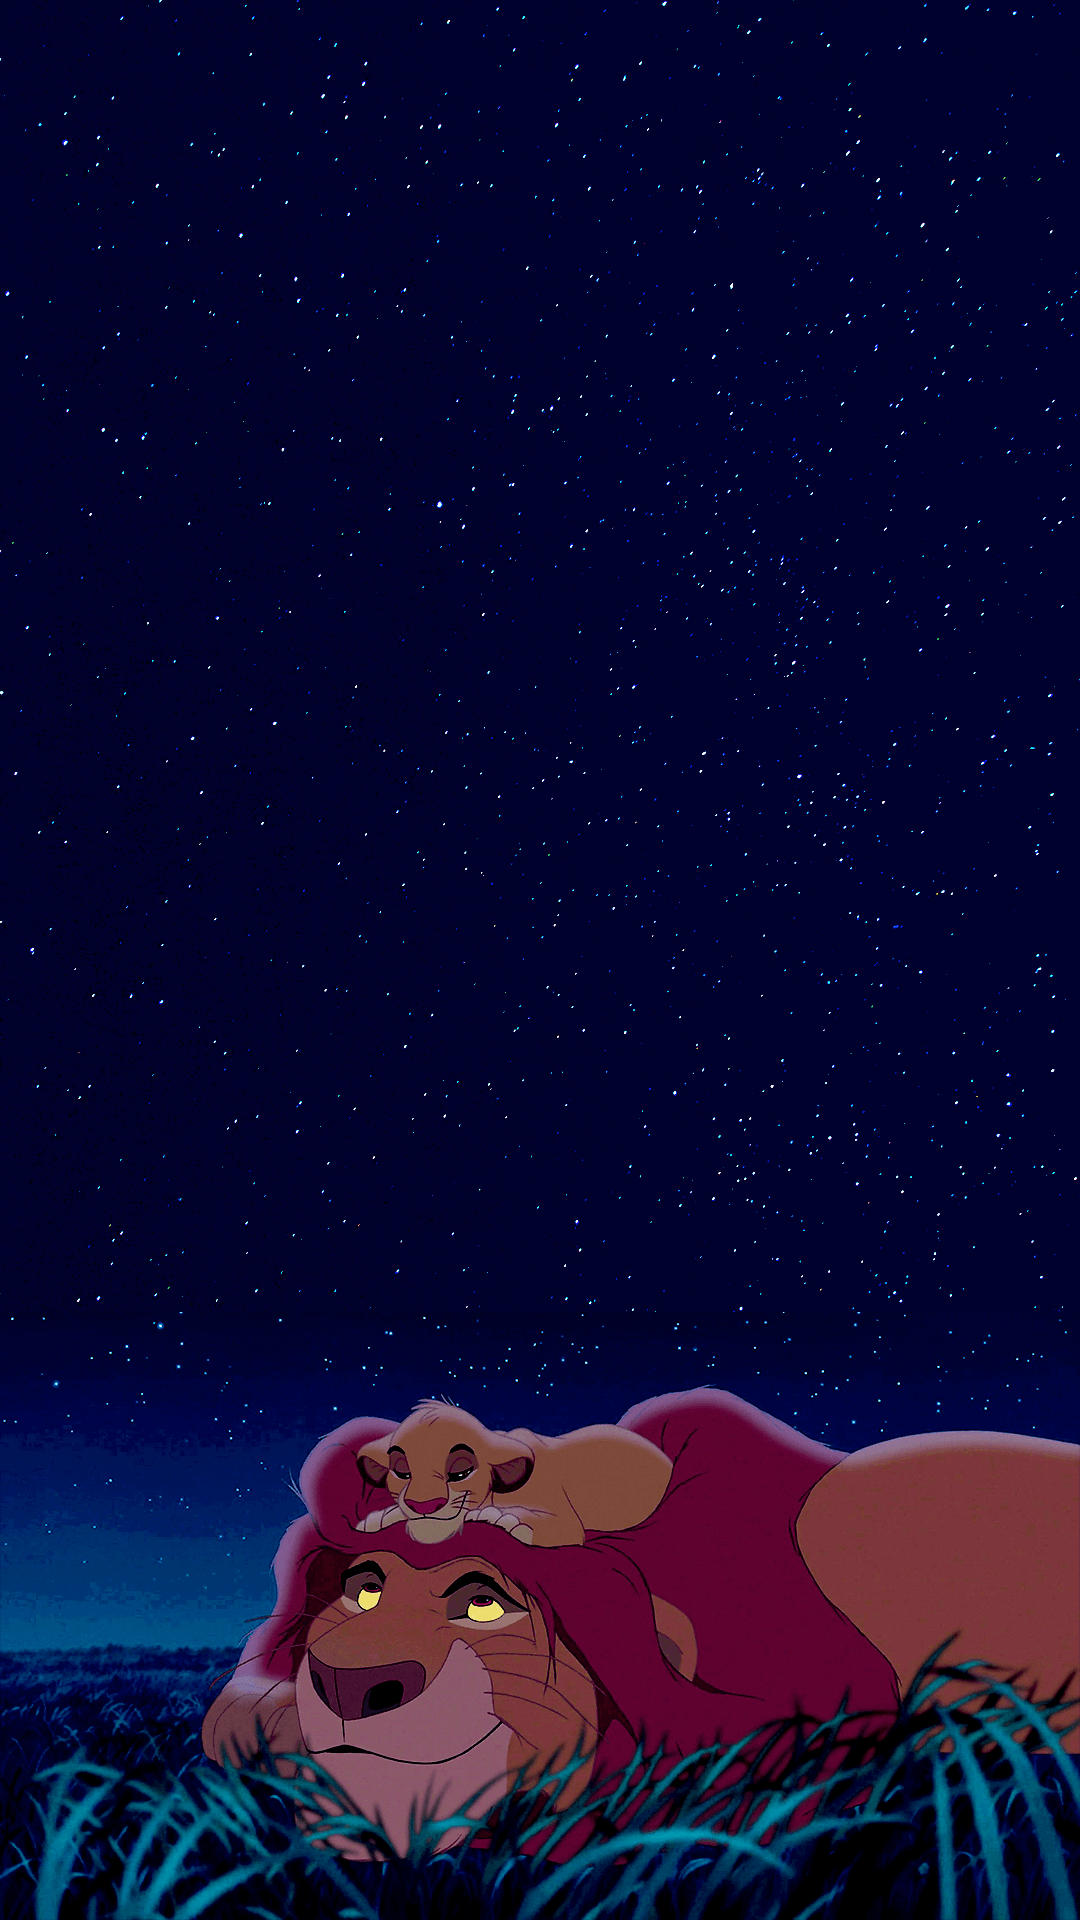 The Lion King backgrounds